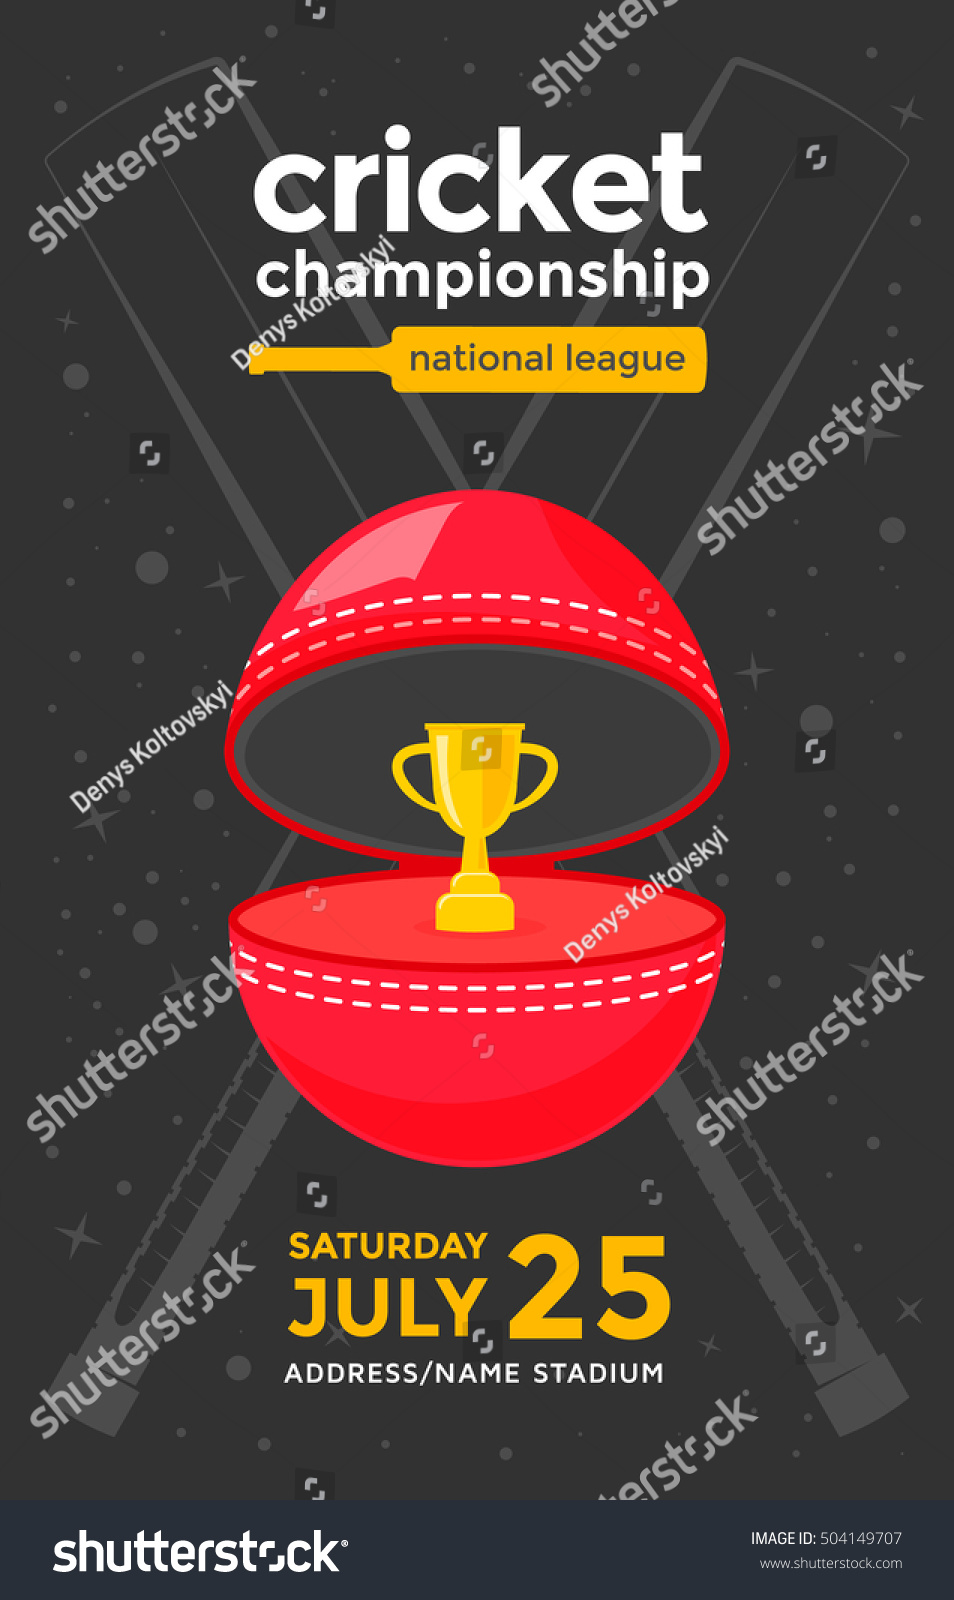 Poster design vector - Cricket Championship Sport Poster Design Vector Illustration